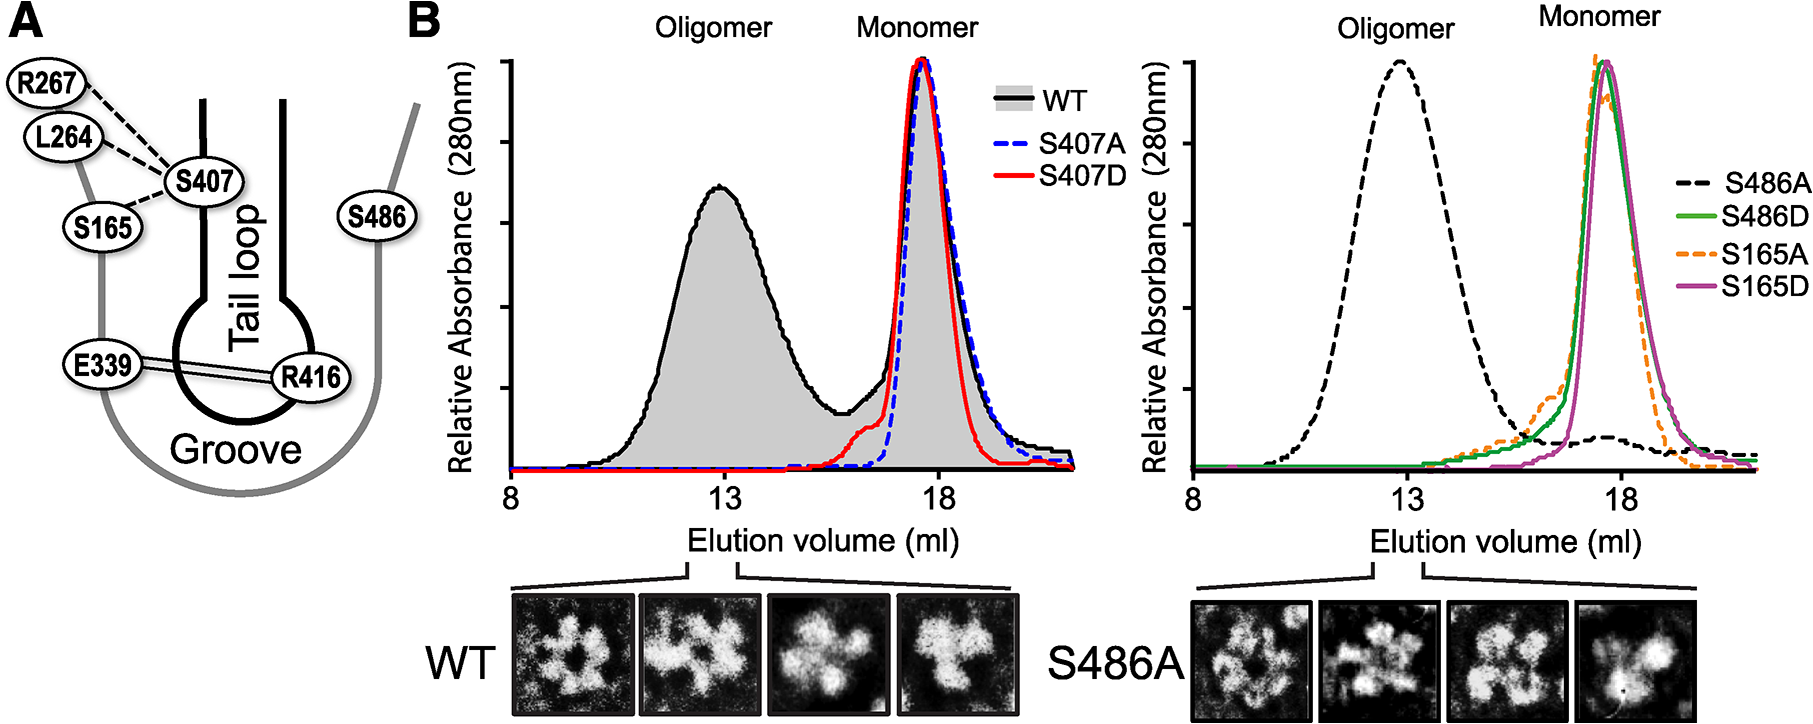 S407 and S486 are located at the NP:NP interface and influence oligomerization.